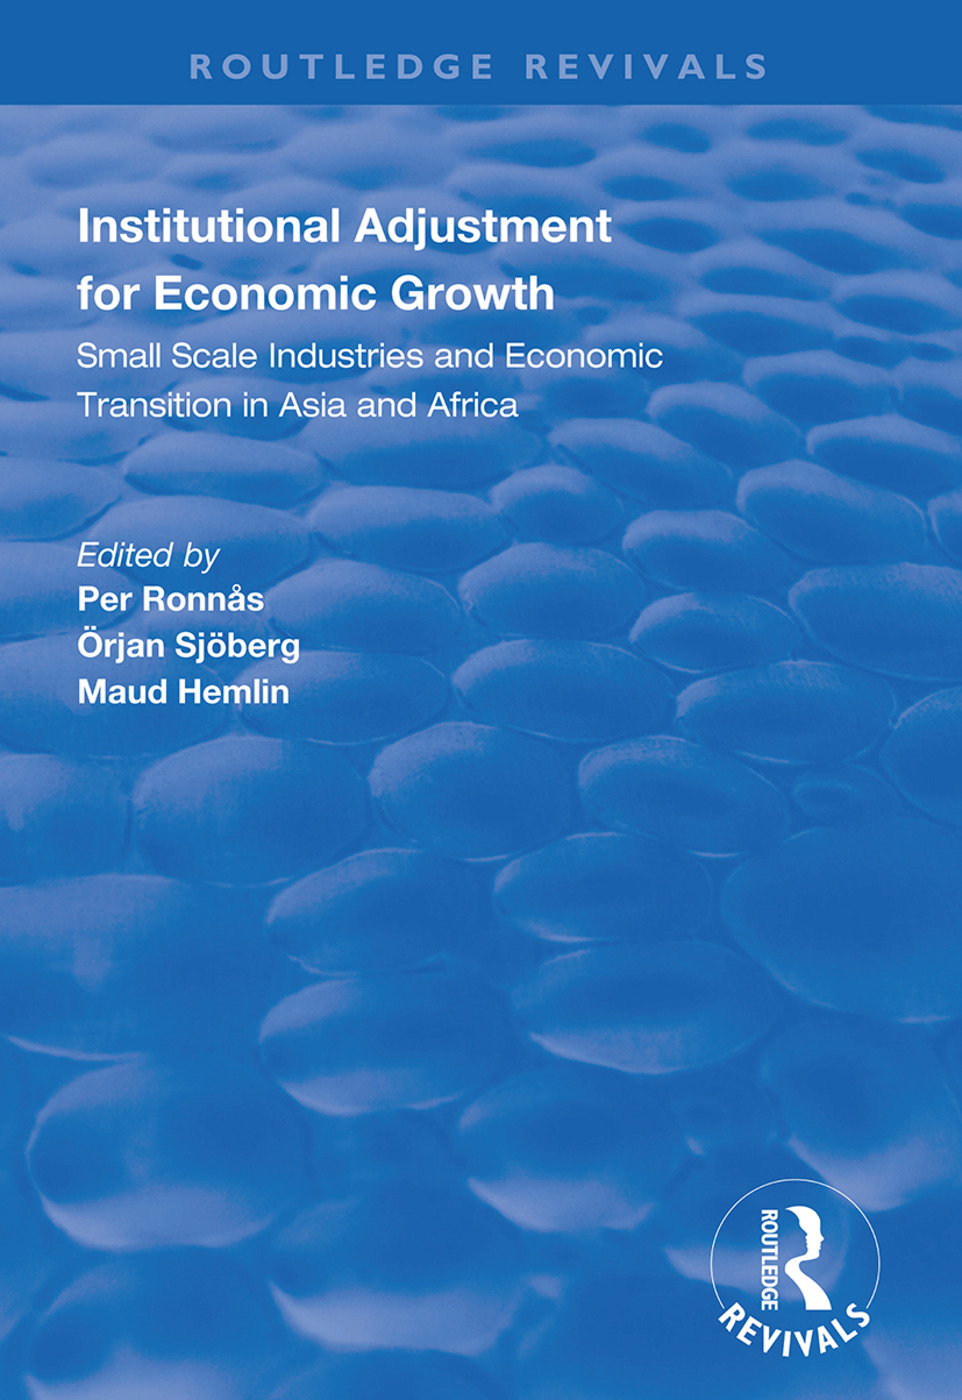 Institutional Adjustment for Economic Growth: Small Scale Industries and Economic Transition in Asia and Africa book cover